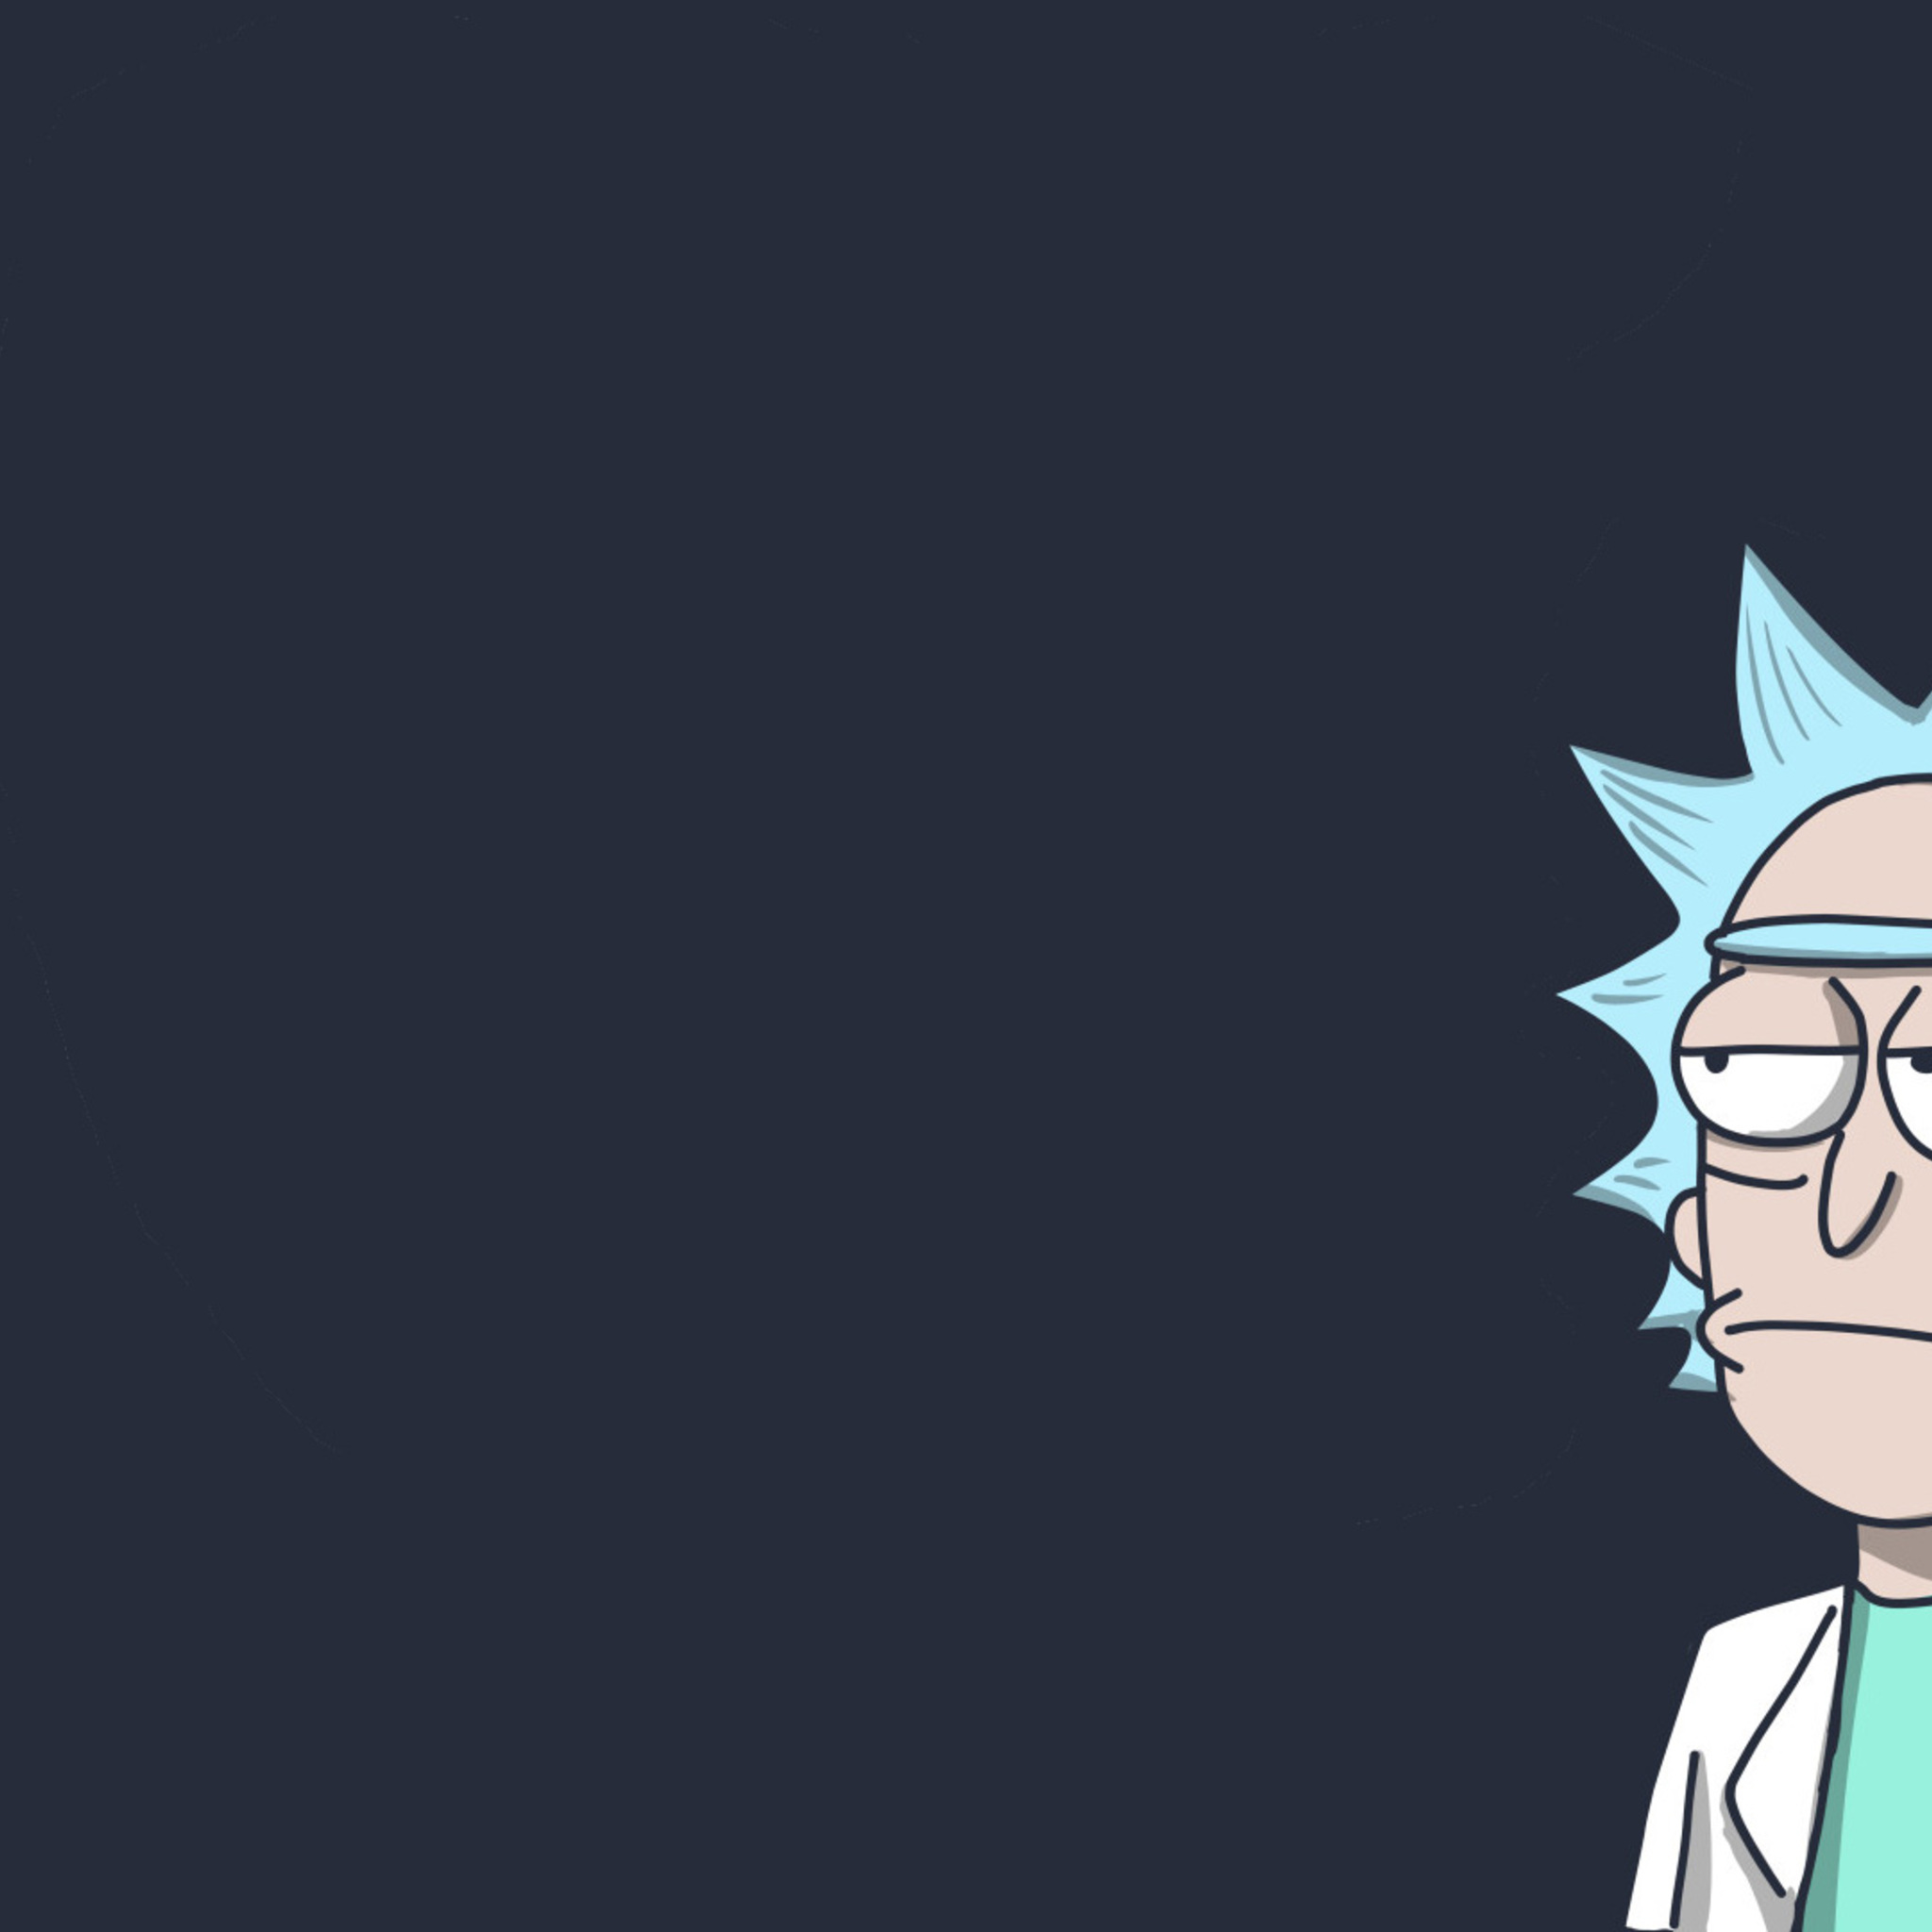 2048x2048 Rick In Rick And Morty Ipad Air Hd 4k Wallpapers Images